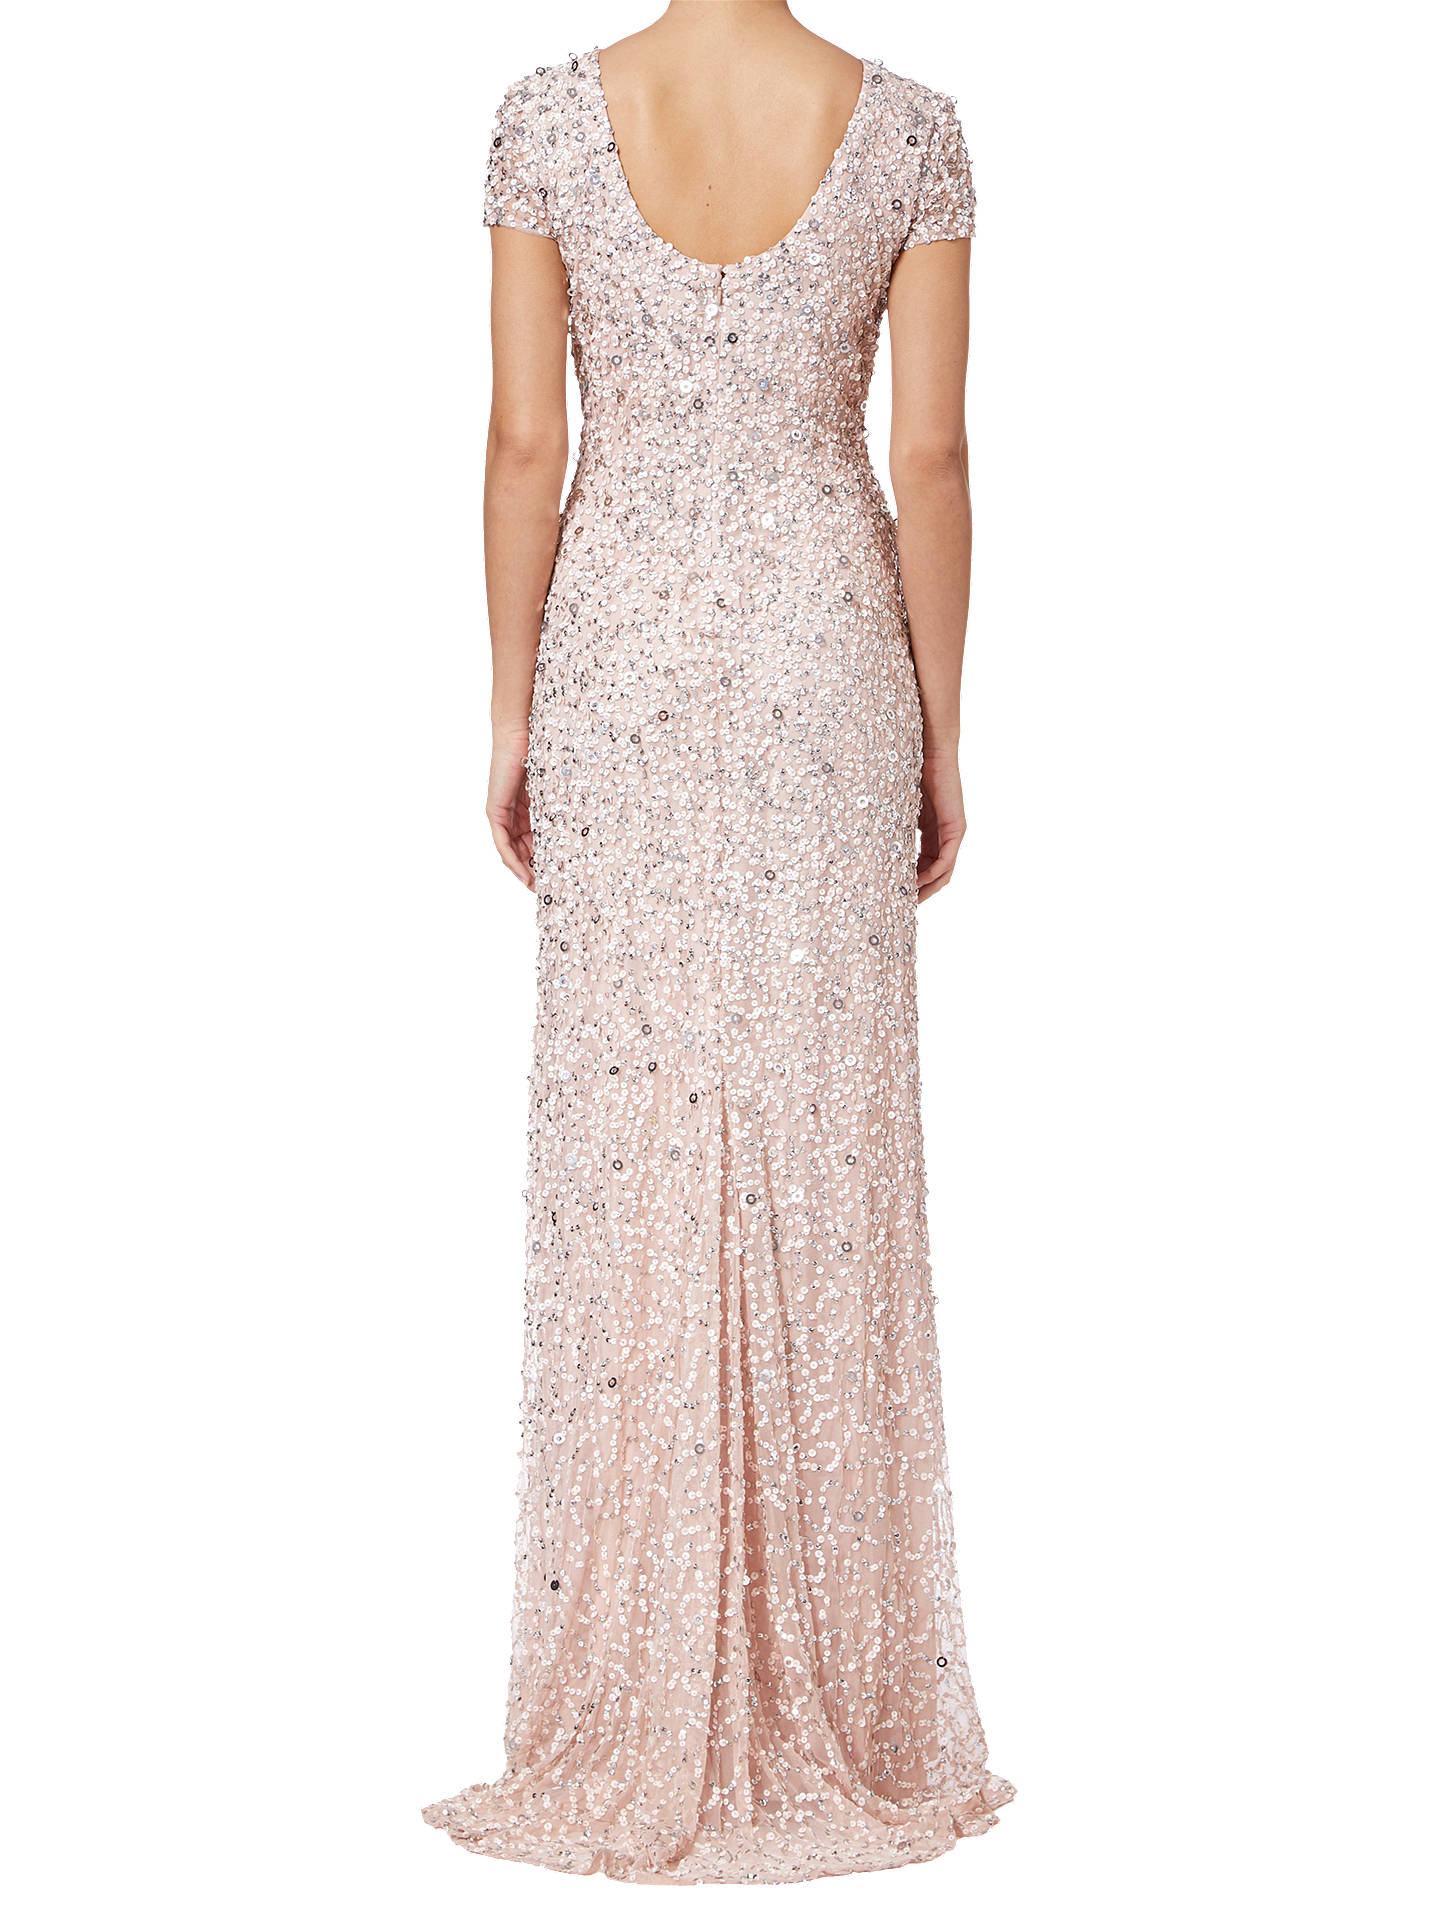 BuyAdrianna Papell Scoop Back Sequin Evening Dress, Blush, 8 Online at johnlewis.com